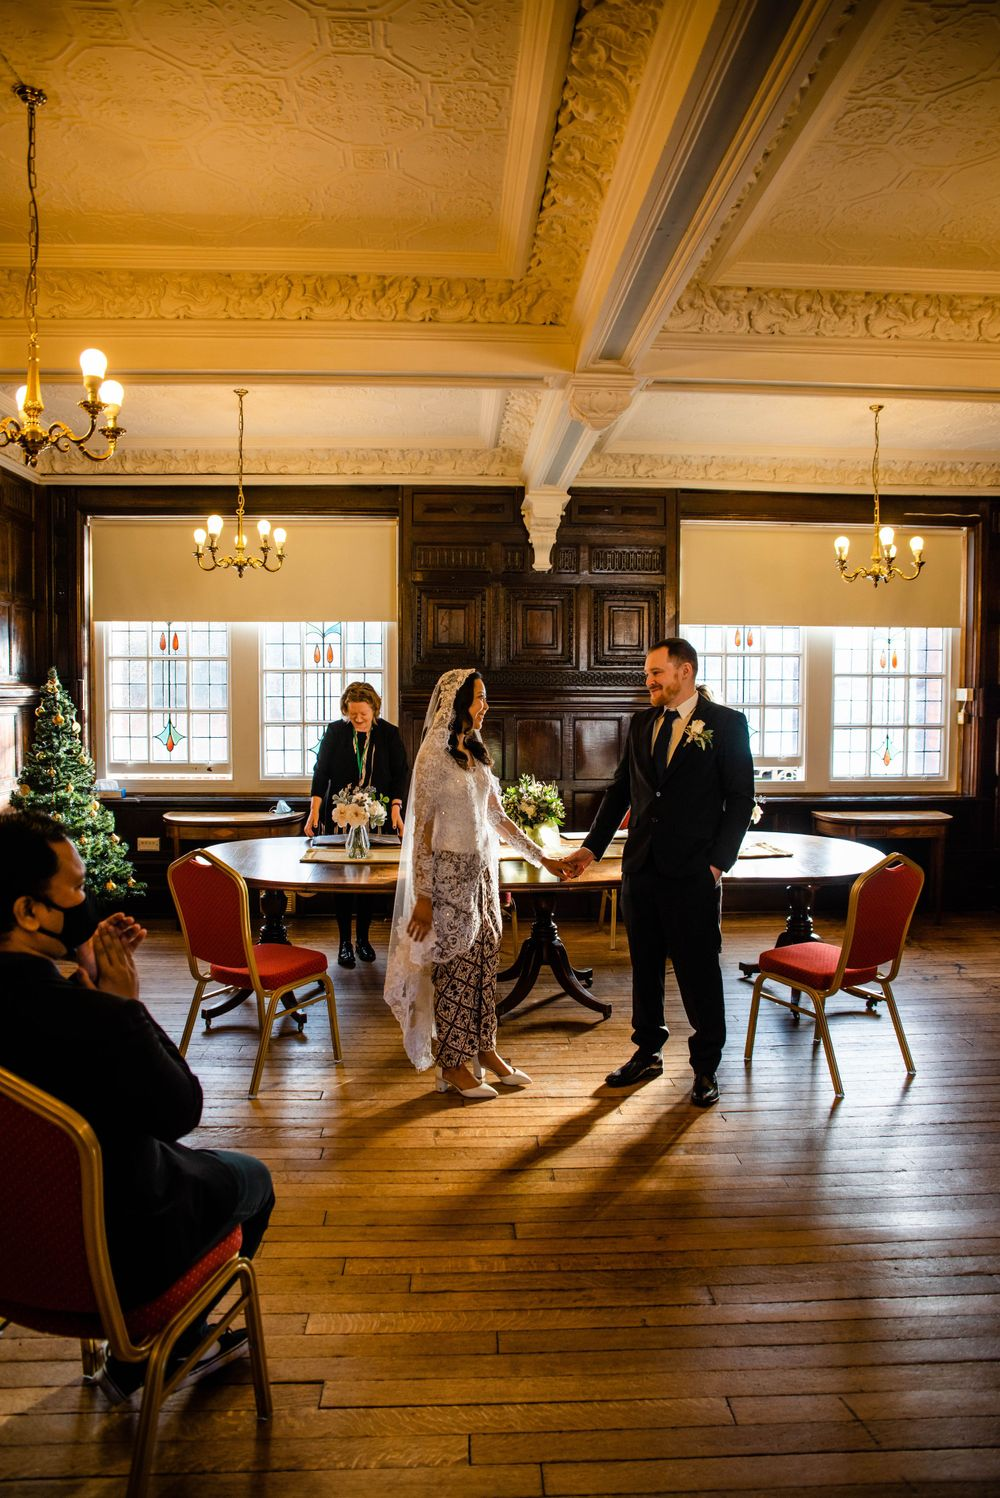 Cotswolds based Zara Davis Wedding Photography at Hereford Town Hall Herefordshire declared husband and wife